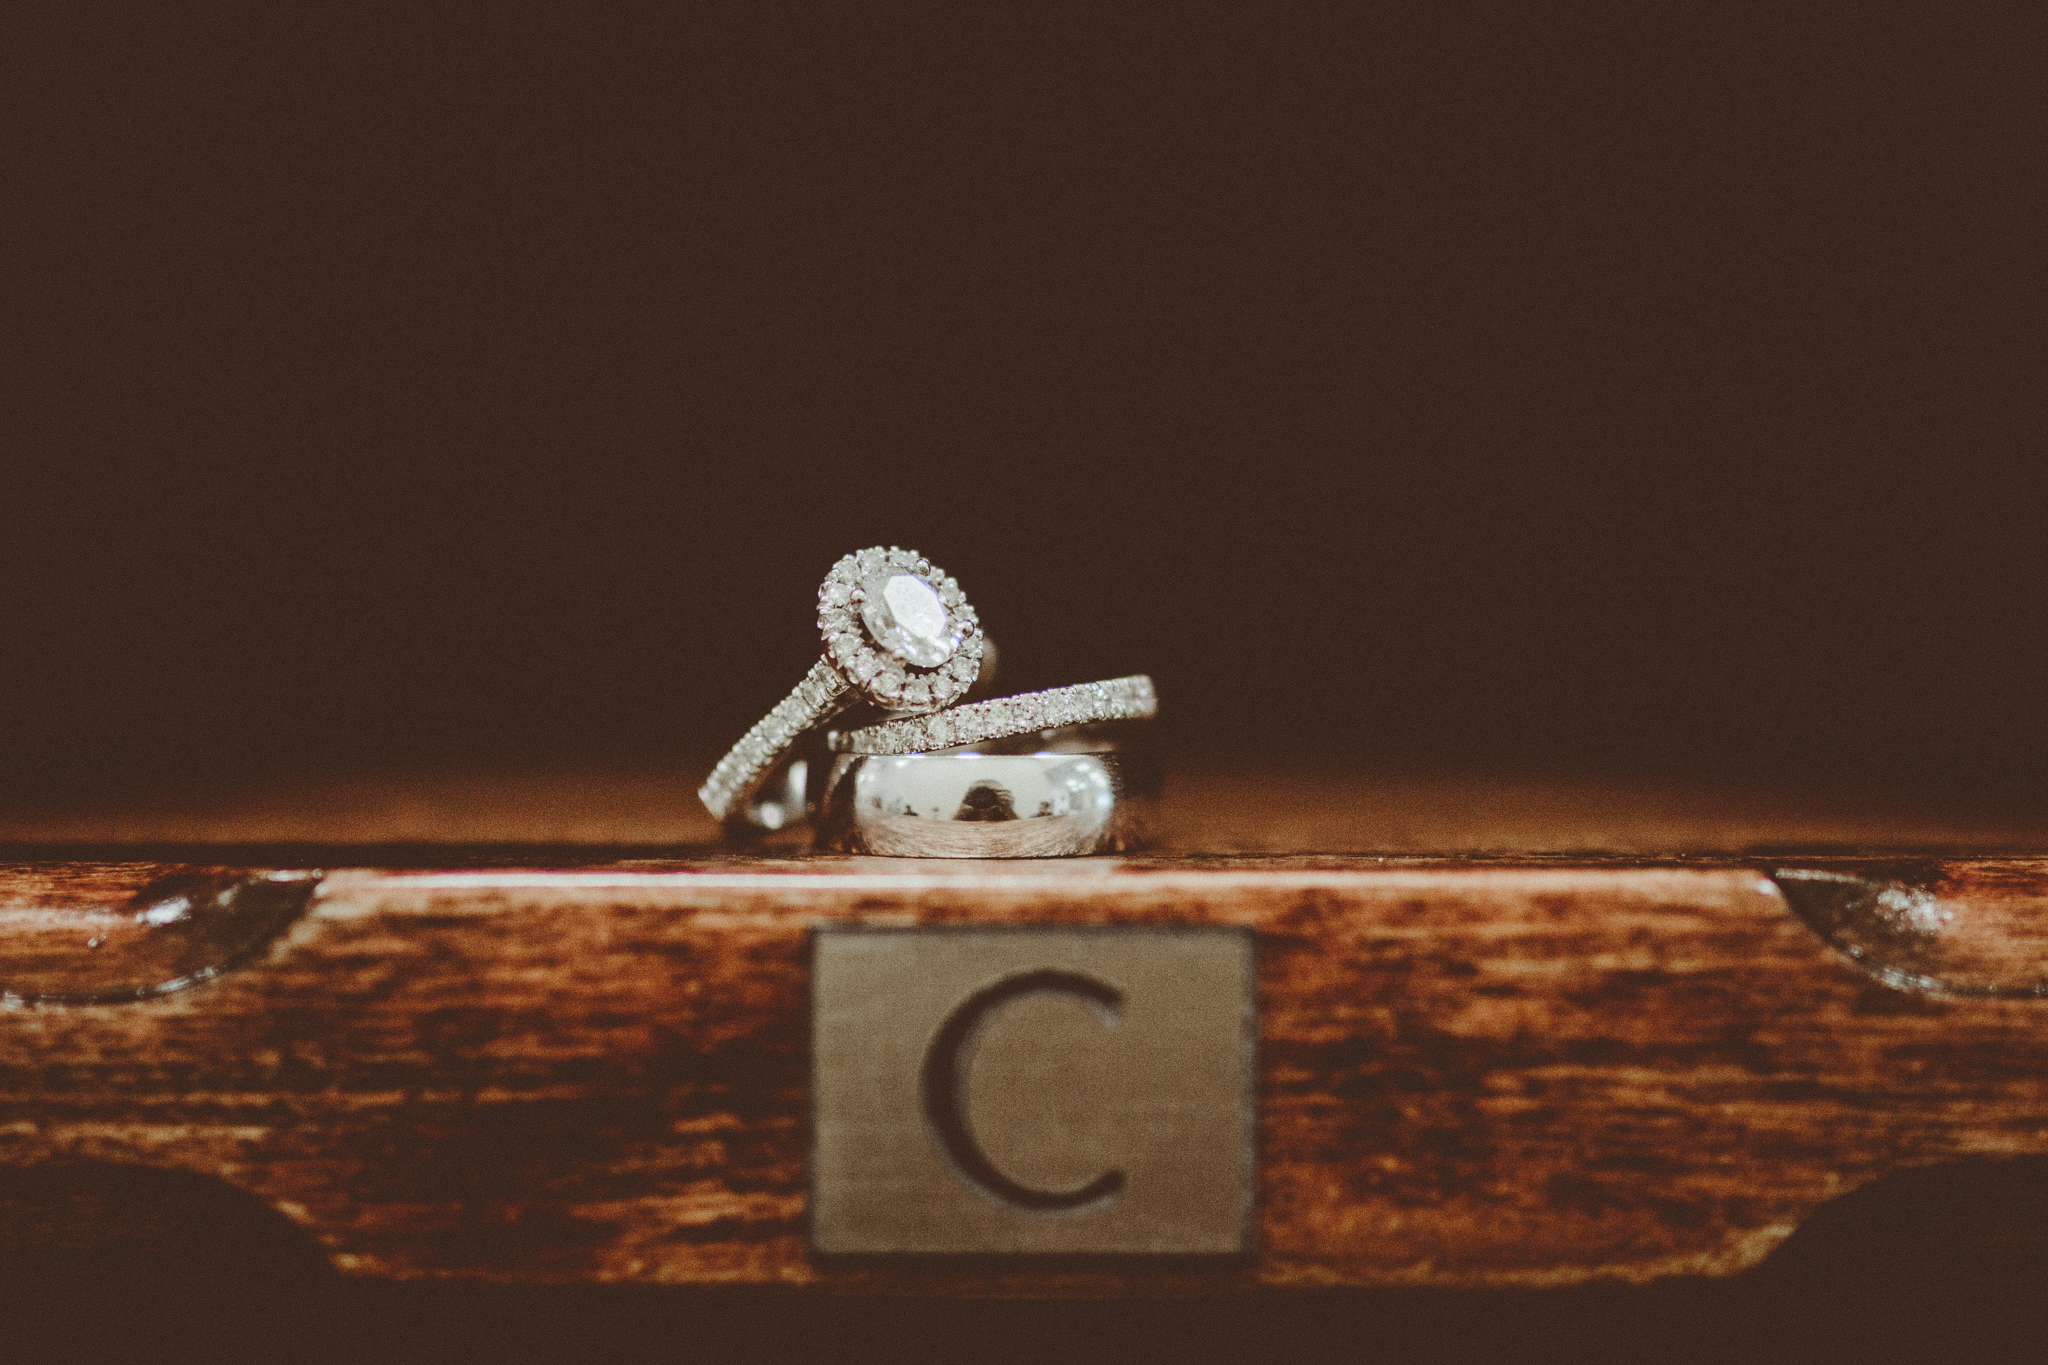 Ring Shot. Josh + Alora | Classic Denham Springs Wedding. Photos by Christi Childs with The Picture People LA photography Baton Rouge, Louisiana